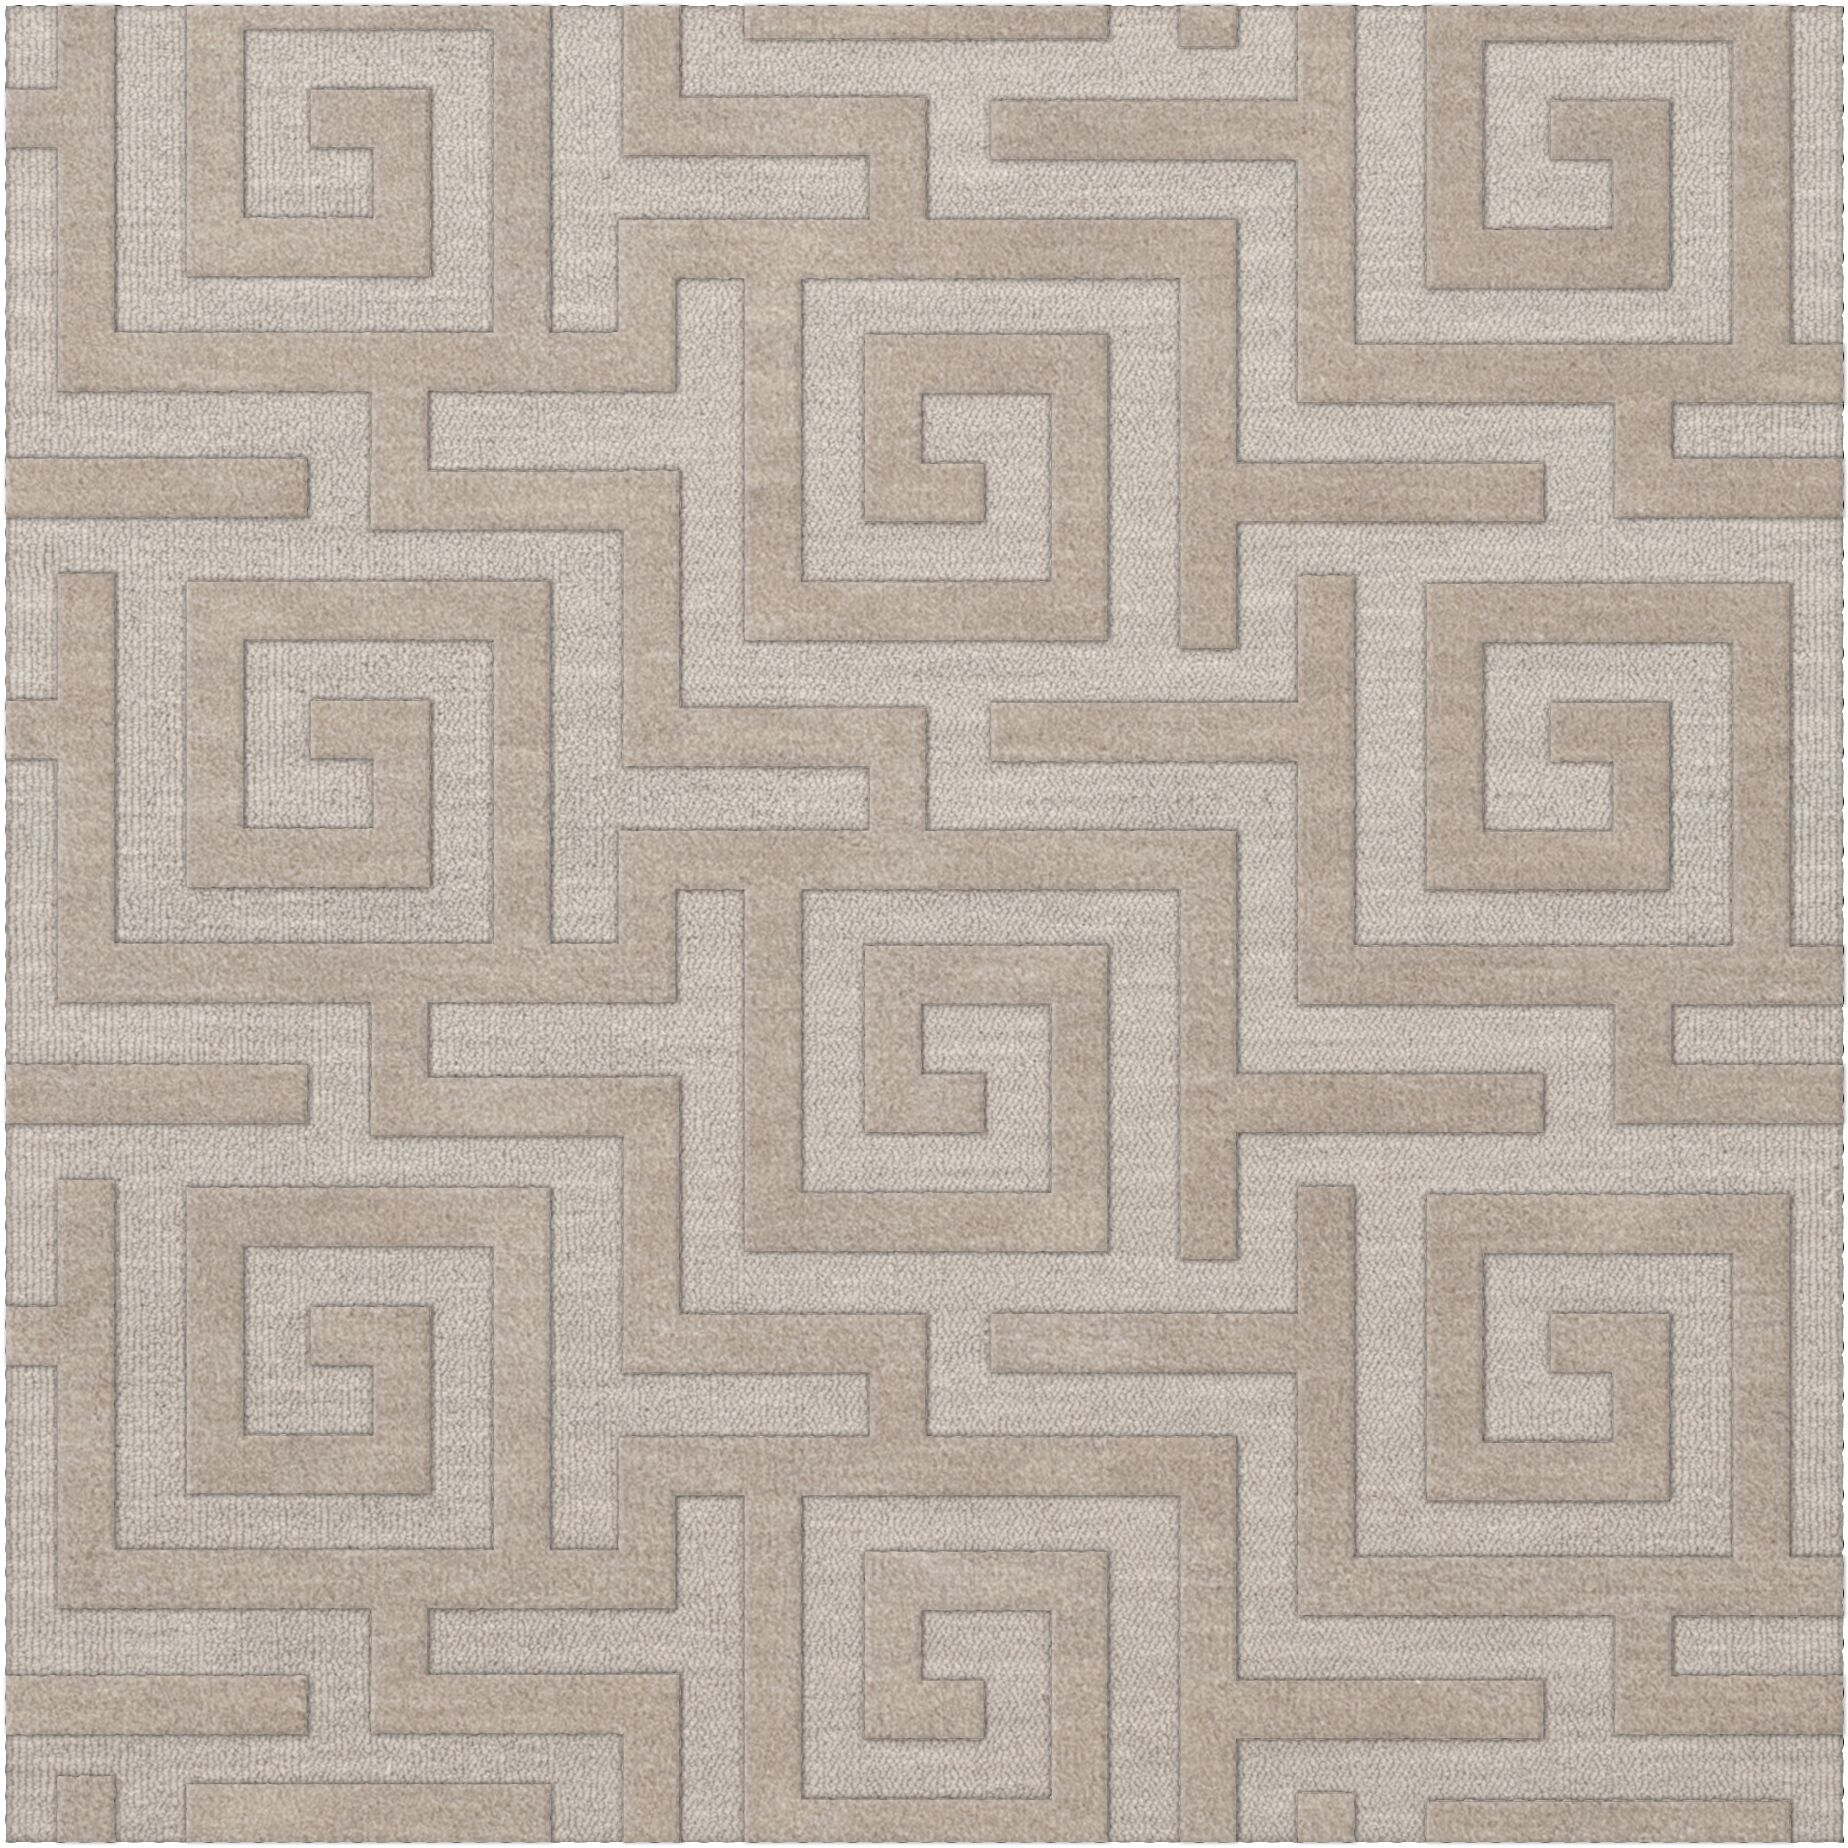 Dover Tufted Wool Putty Area Rug Rug Size: Square 6'